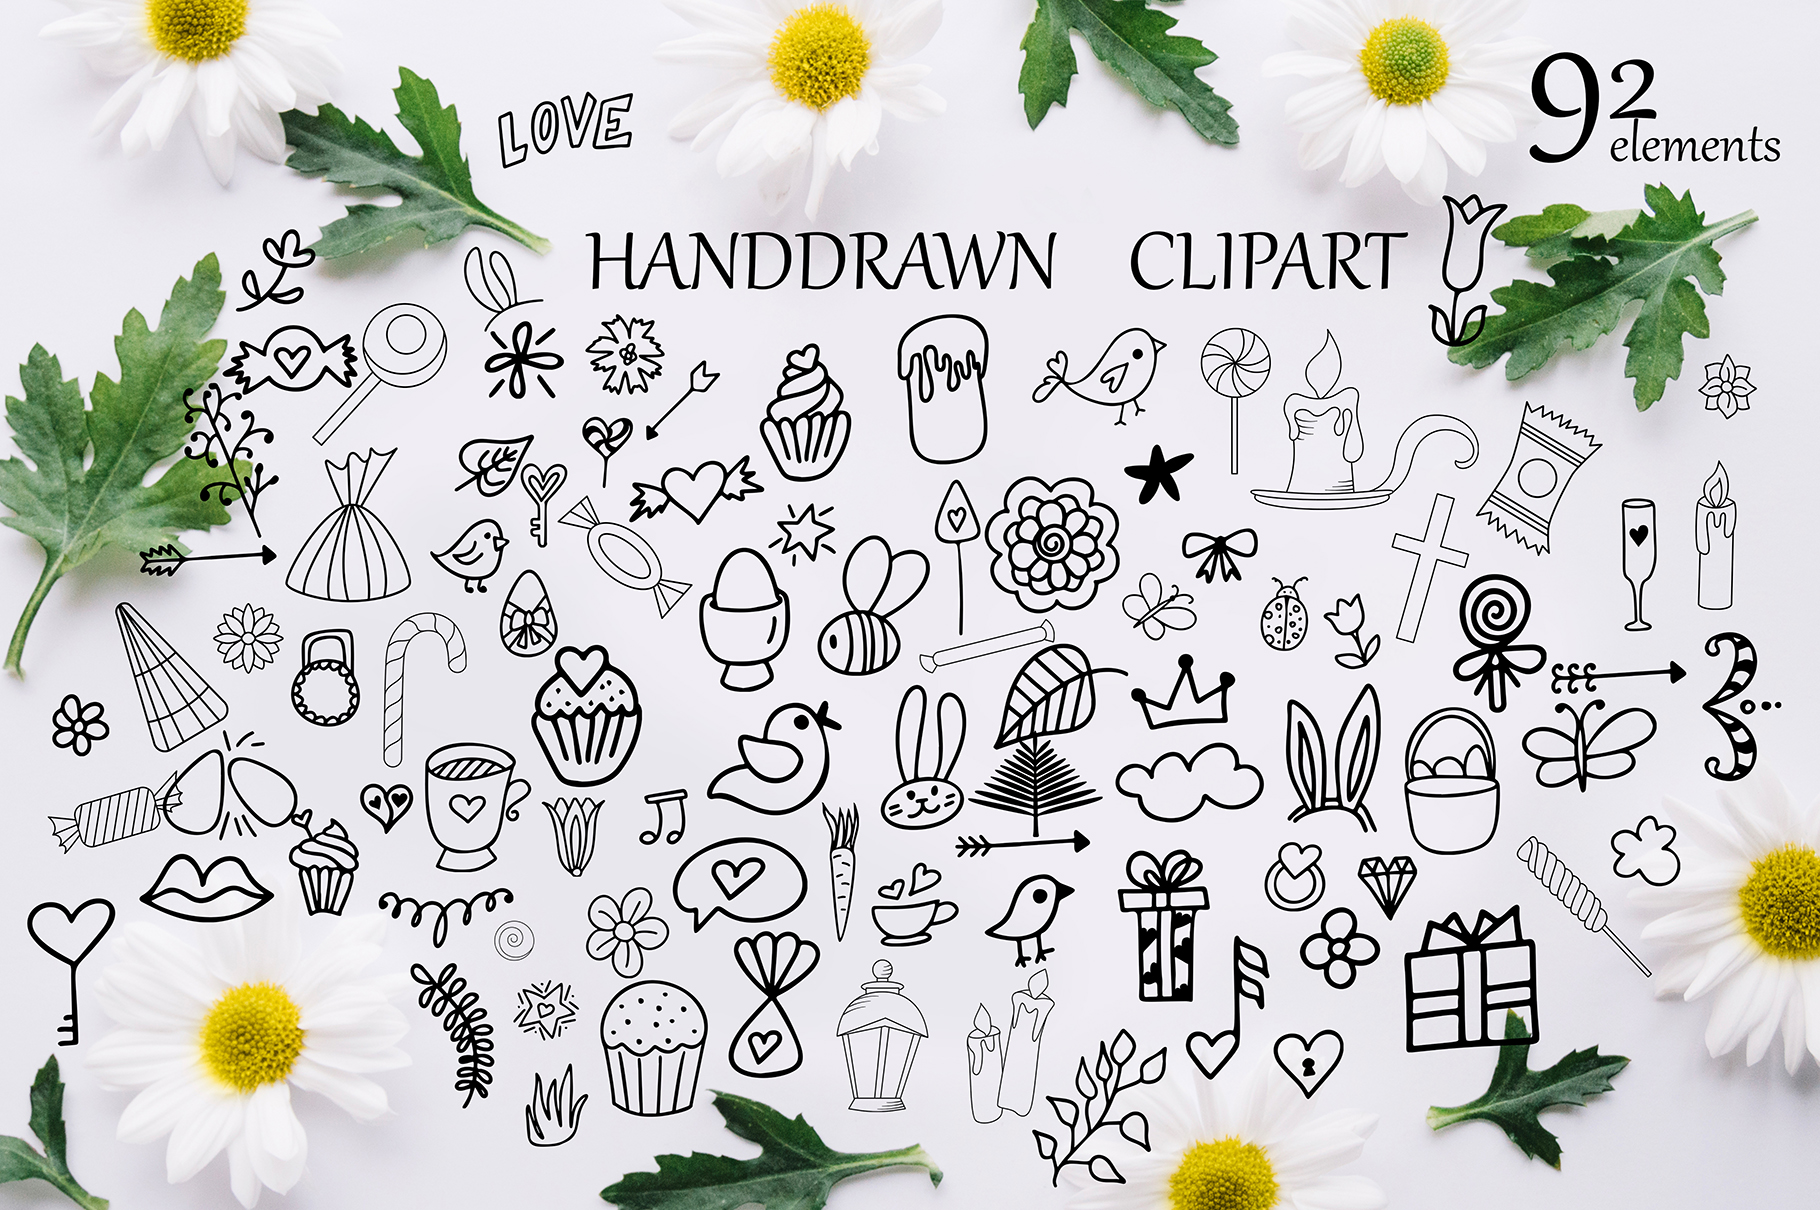 Spring Kit - Lettering + Clipart Graphic Illustrations By tregubova.jul - Image 7